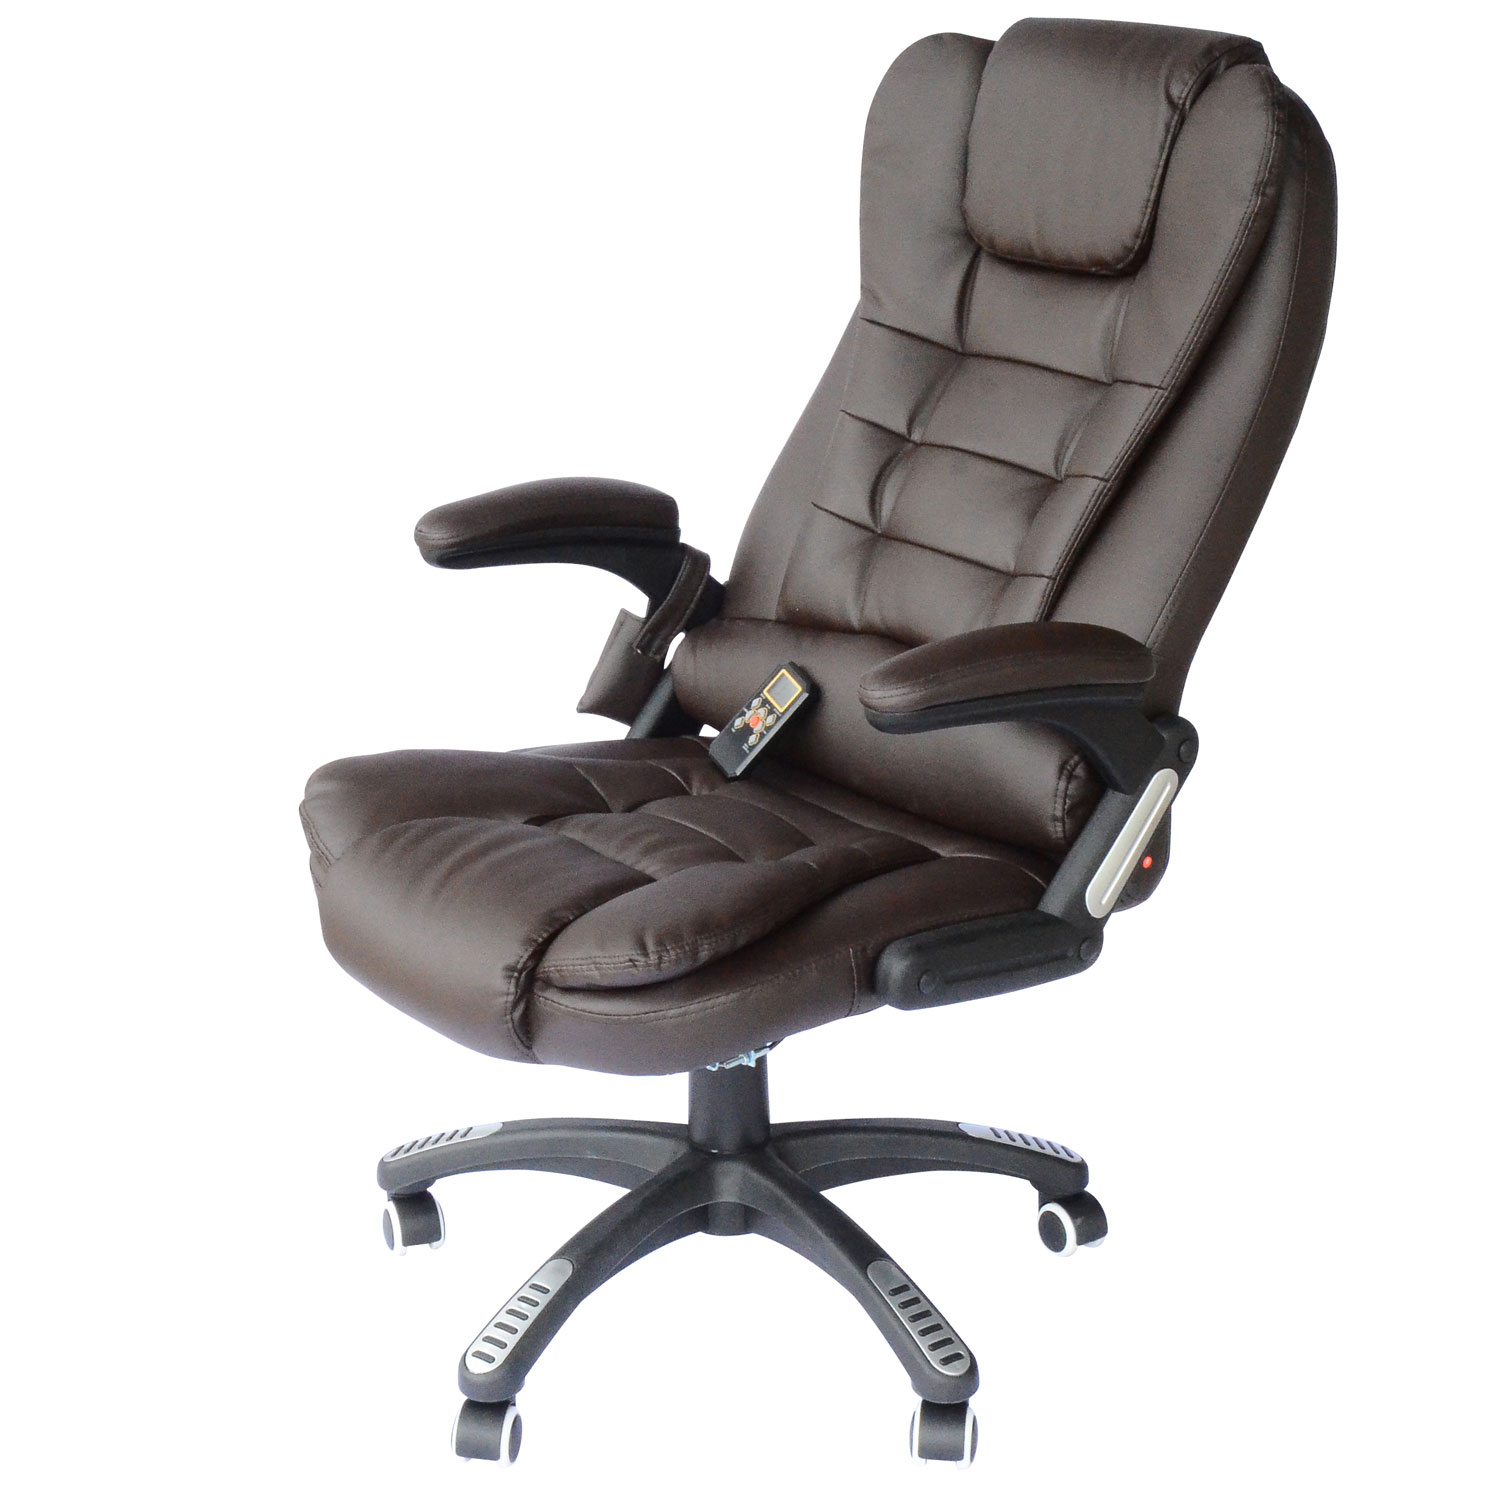 Reflexology Chair Homcom Deluxe Heated Vibrating Pu Leather Massage Recliner